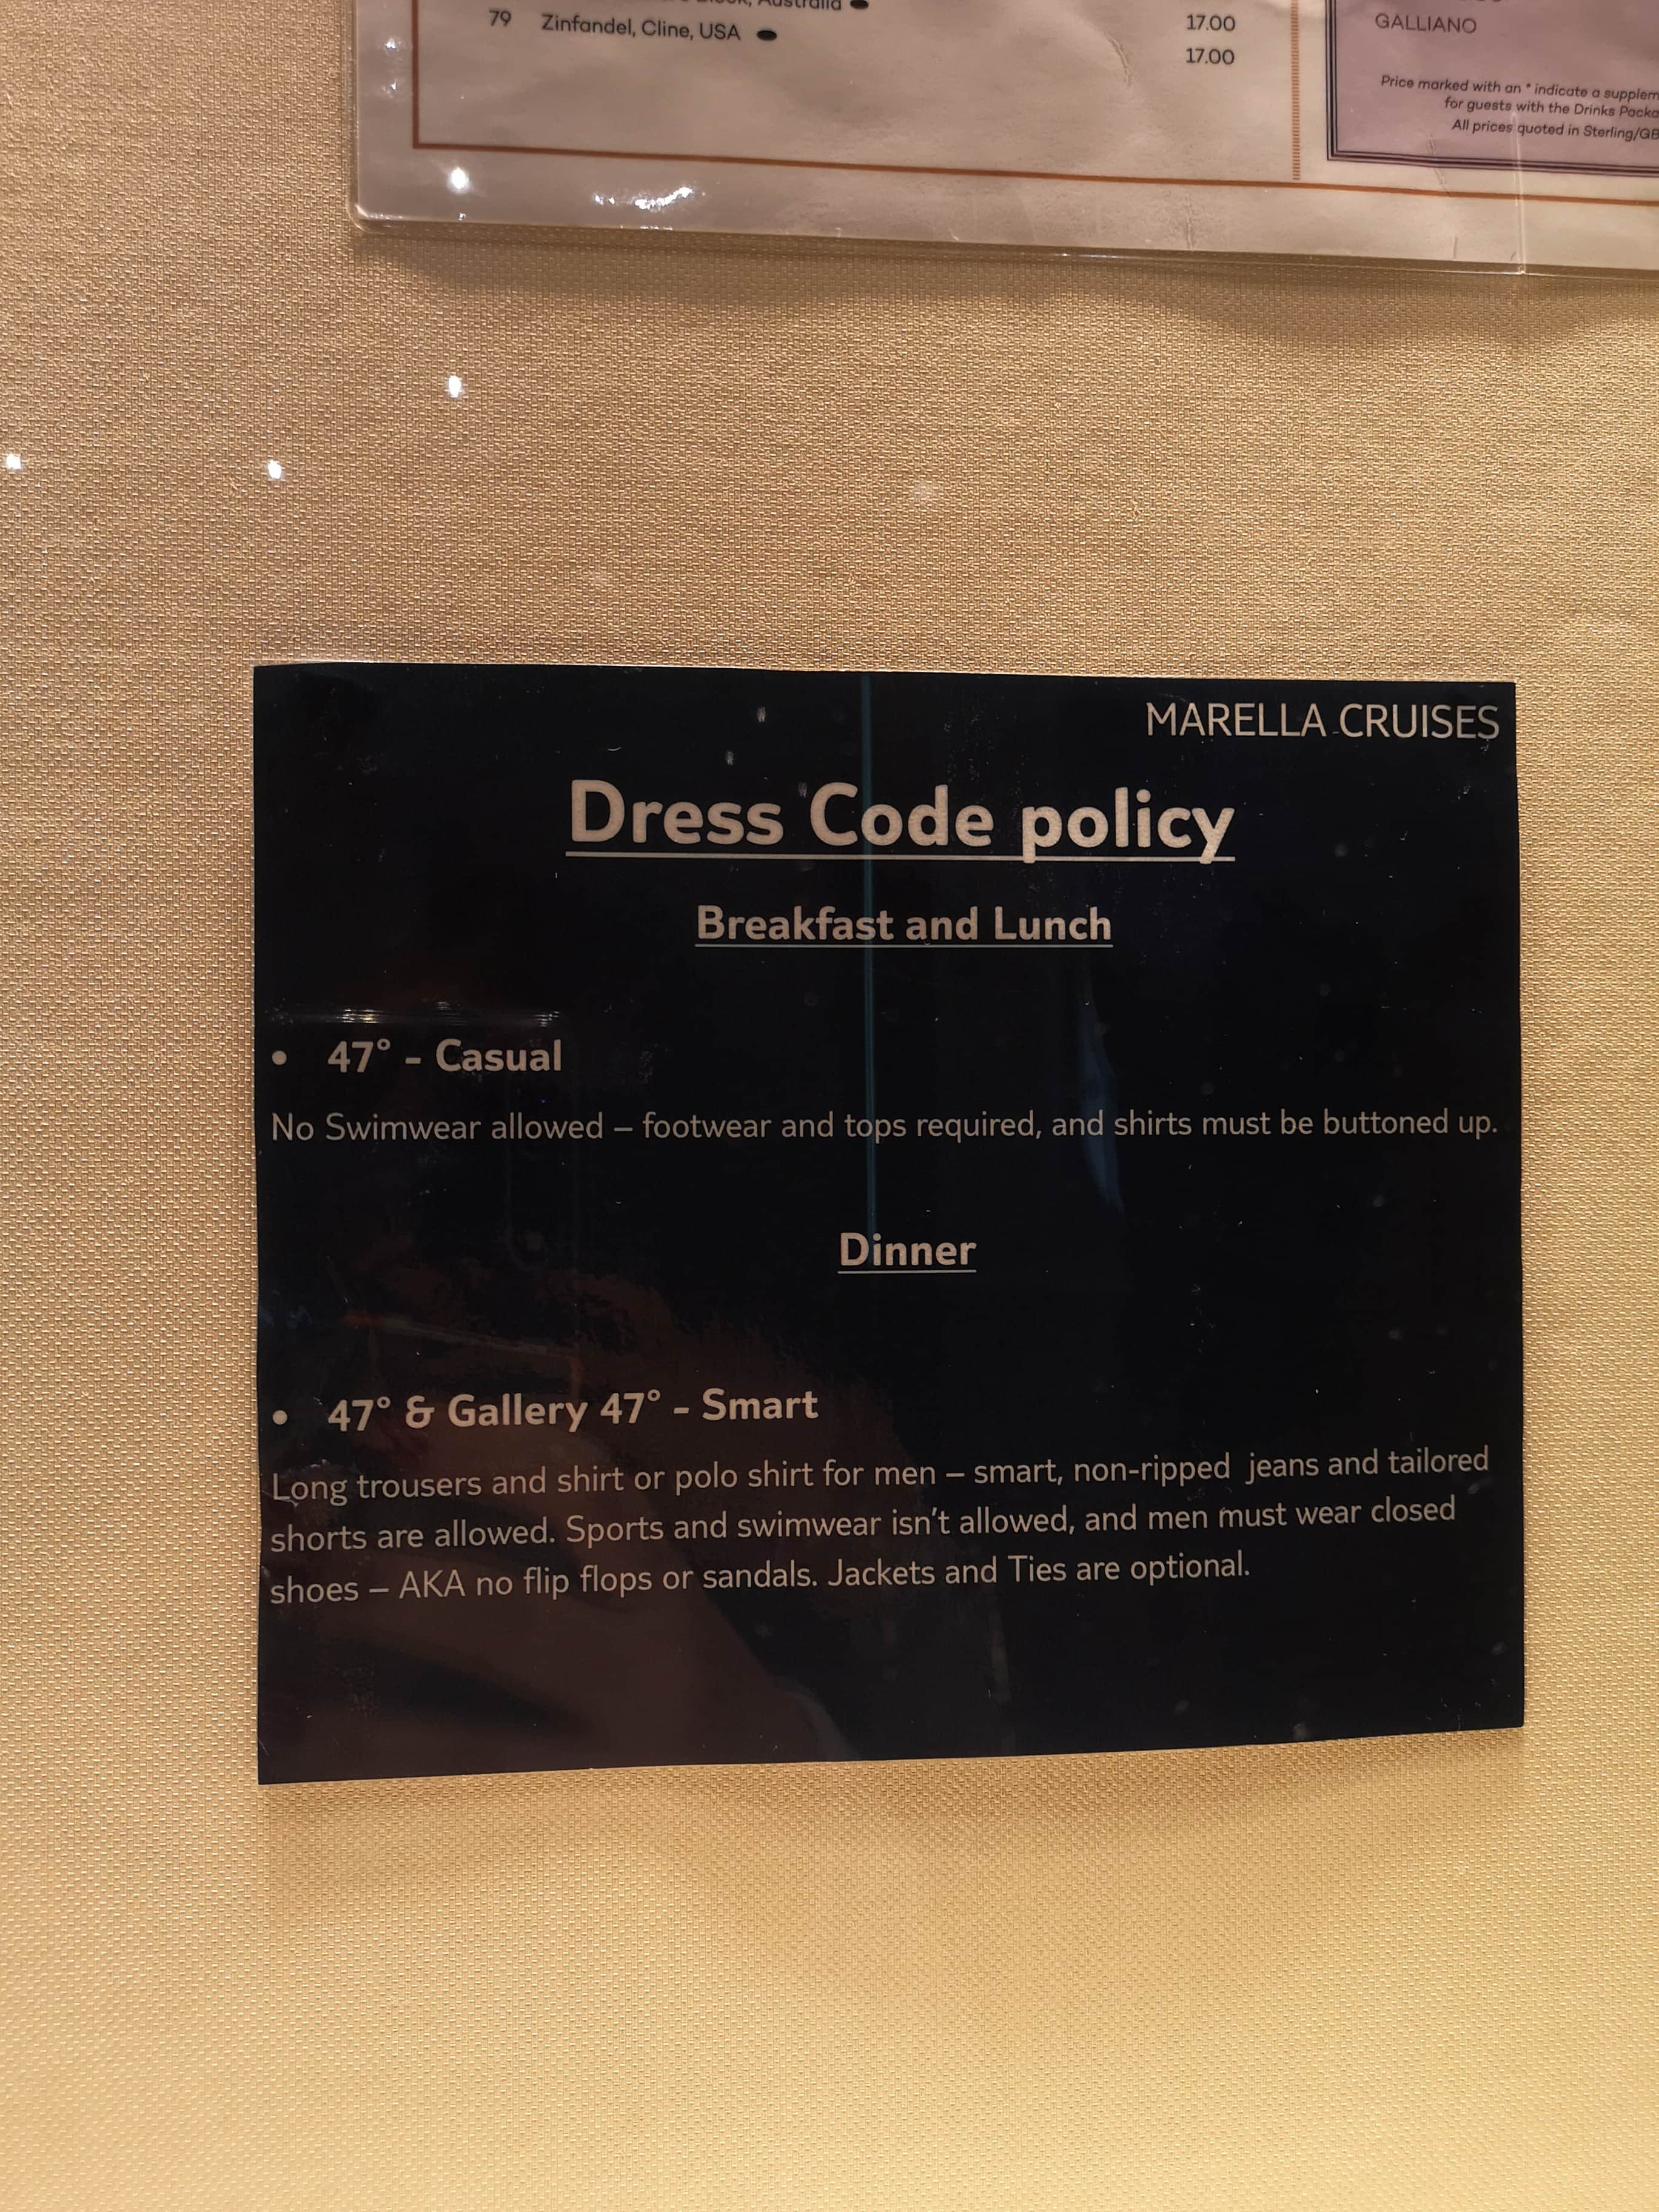 Marella Discovery Main Dining Room Dress Code Policy Splendor of the seas breakfast and lunch smart 47 degrees